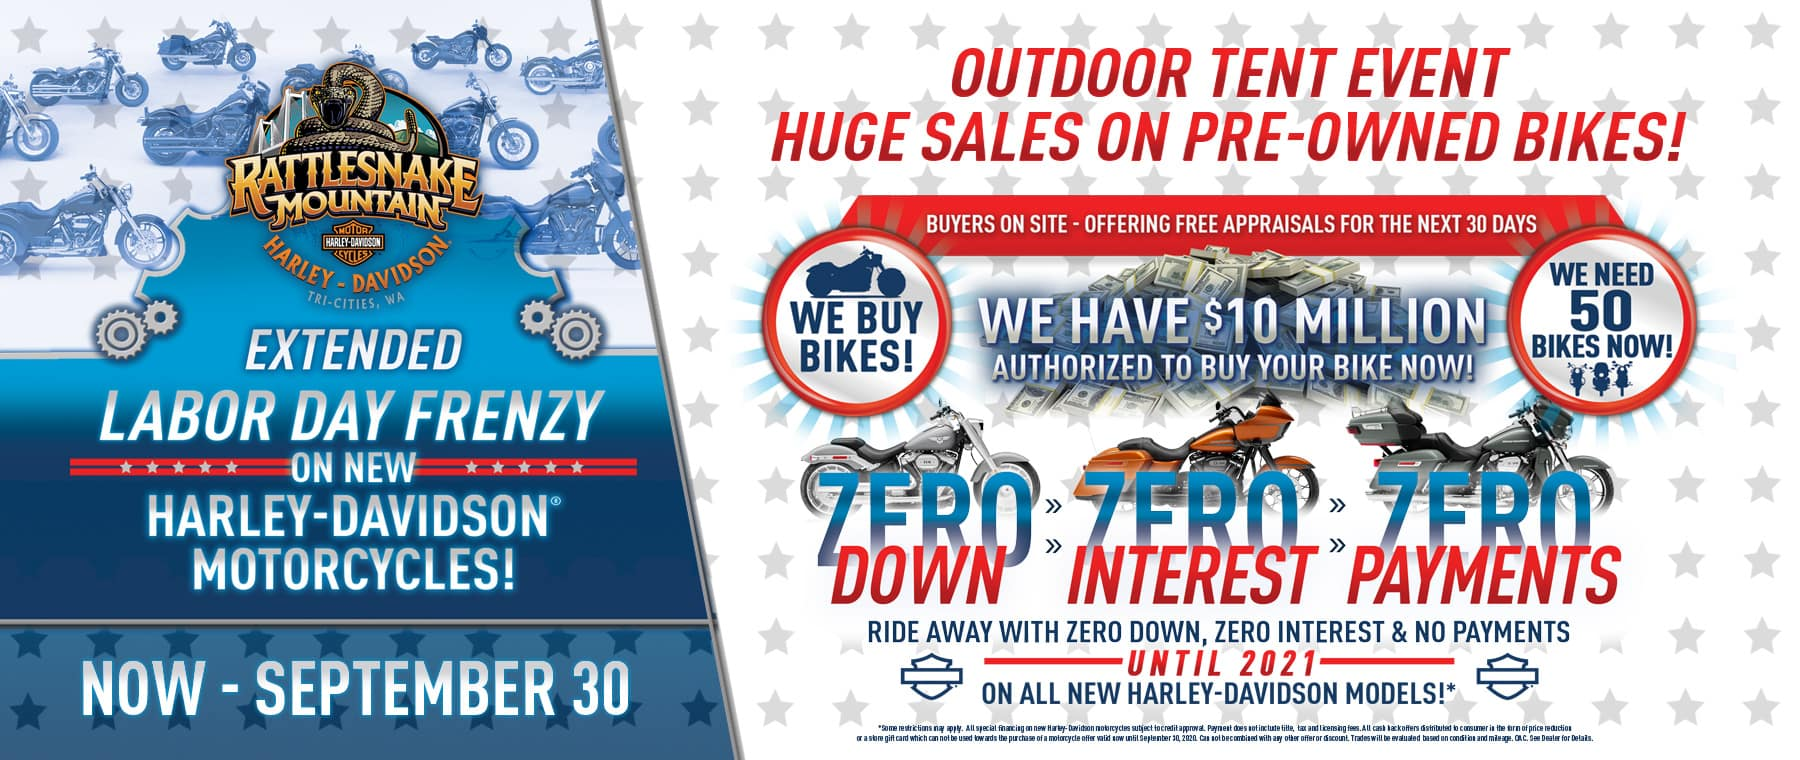 Labor Day Frenzy Extended Through September 30th!